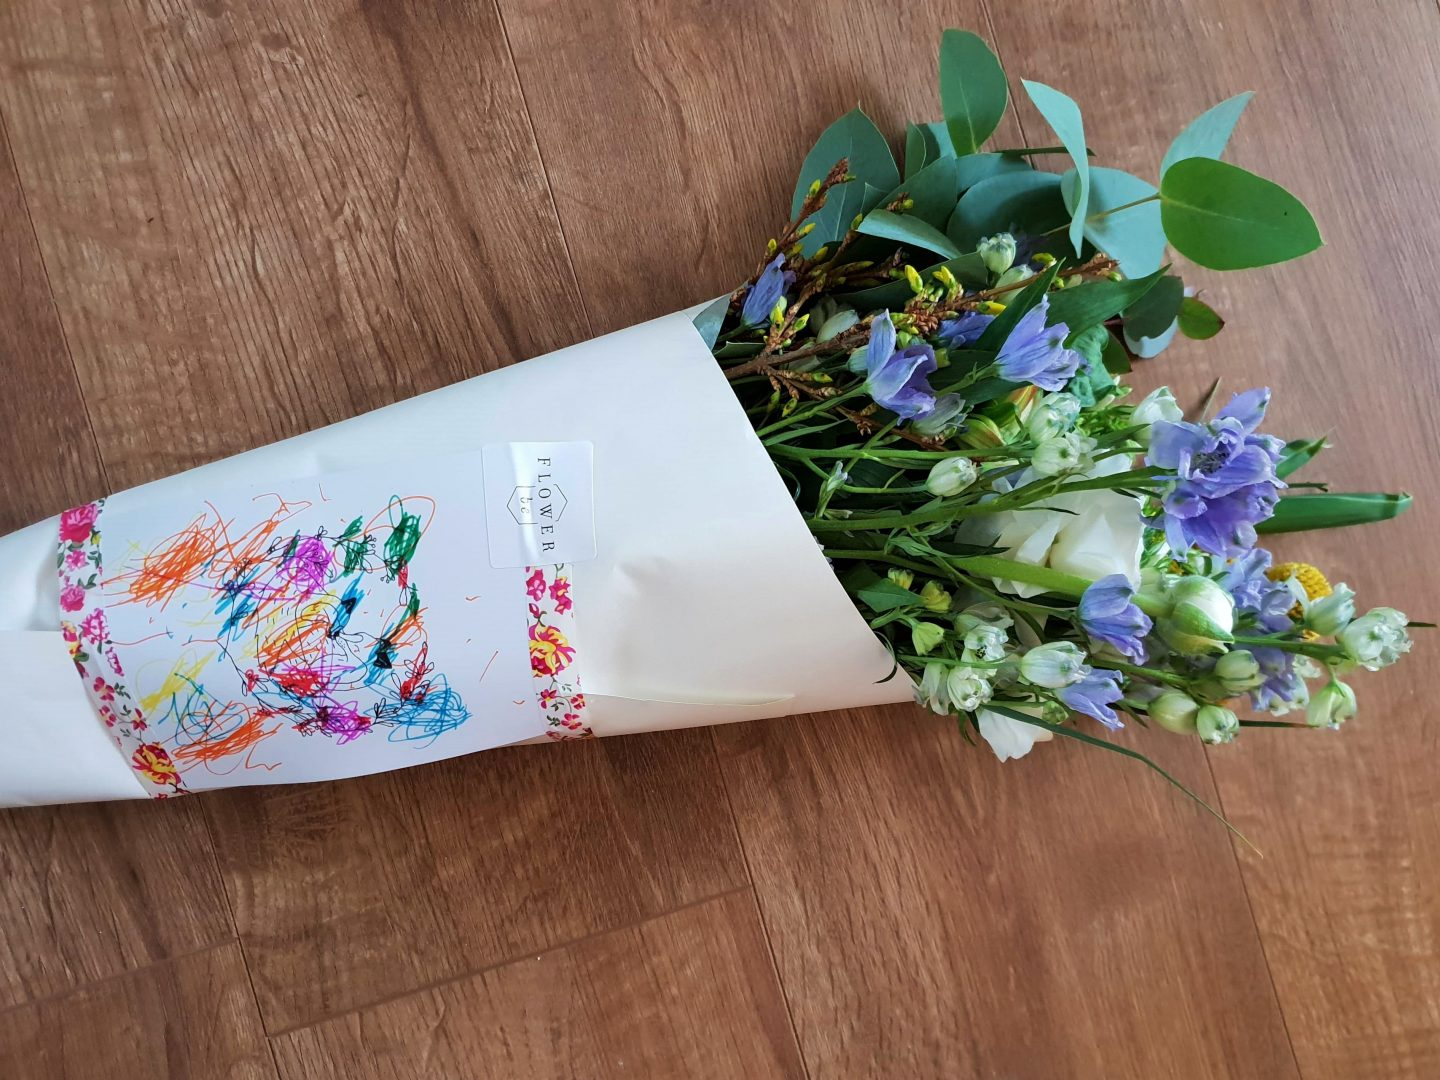 Mother's Day flowers from FlowerBe decorated with kid's creative kit